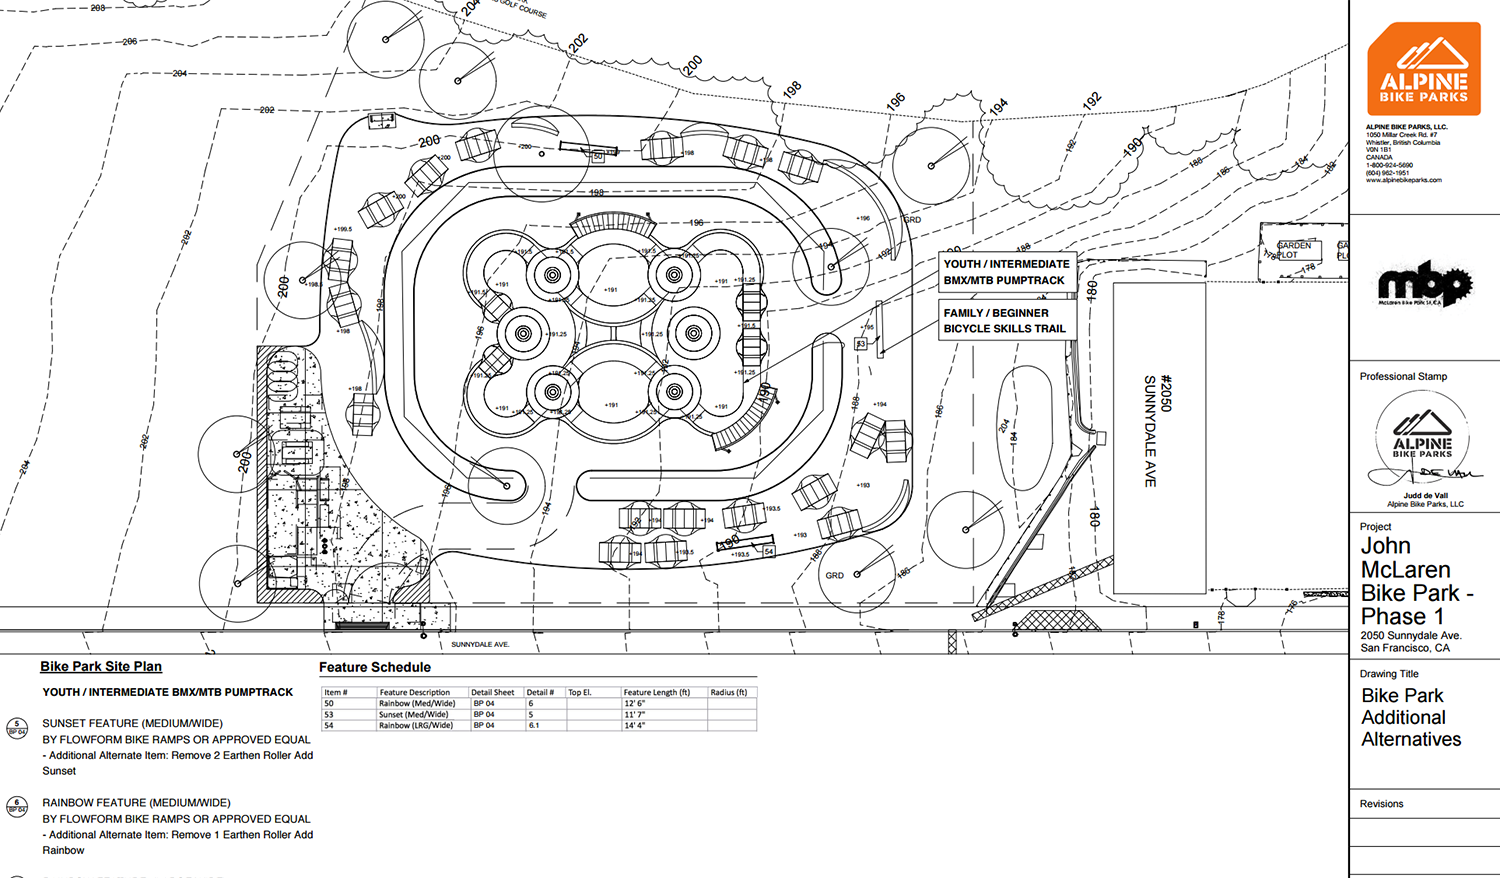 McLaren Bike Park Construction Documents